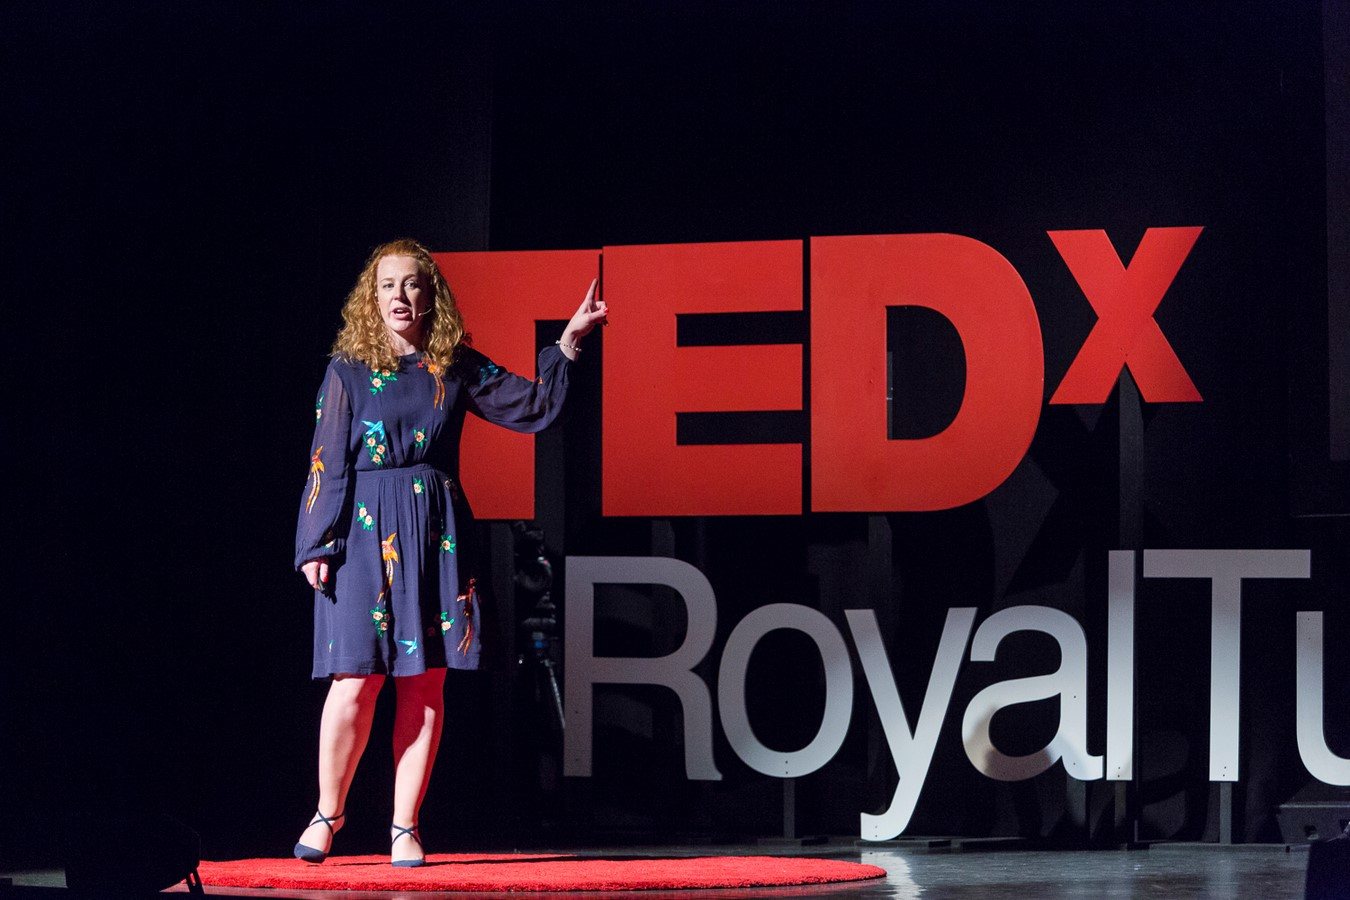 TedTalk for Architects: Interior design is about more than wallpaper and bean bags by Phoebe Oldrey at TEDxRoyalTunbridgeWells - Sheet5